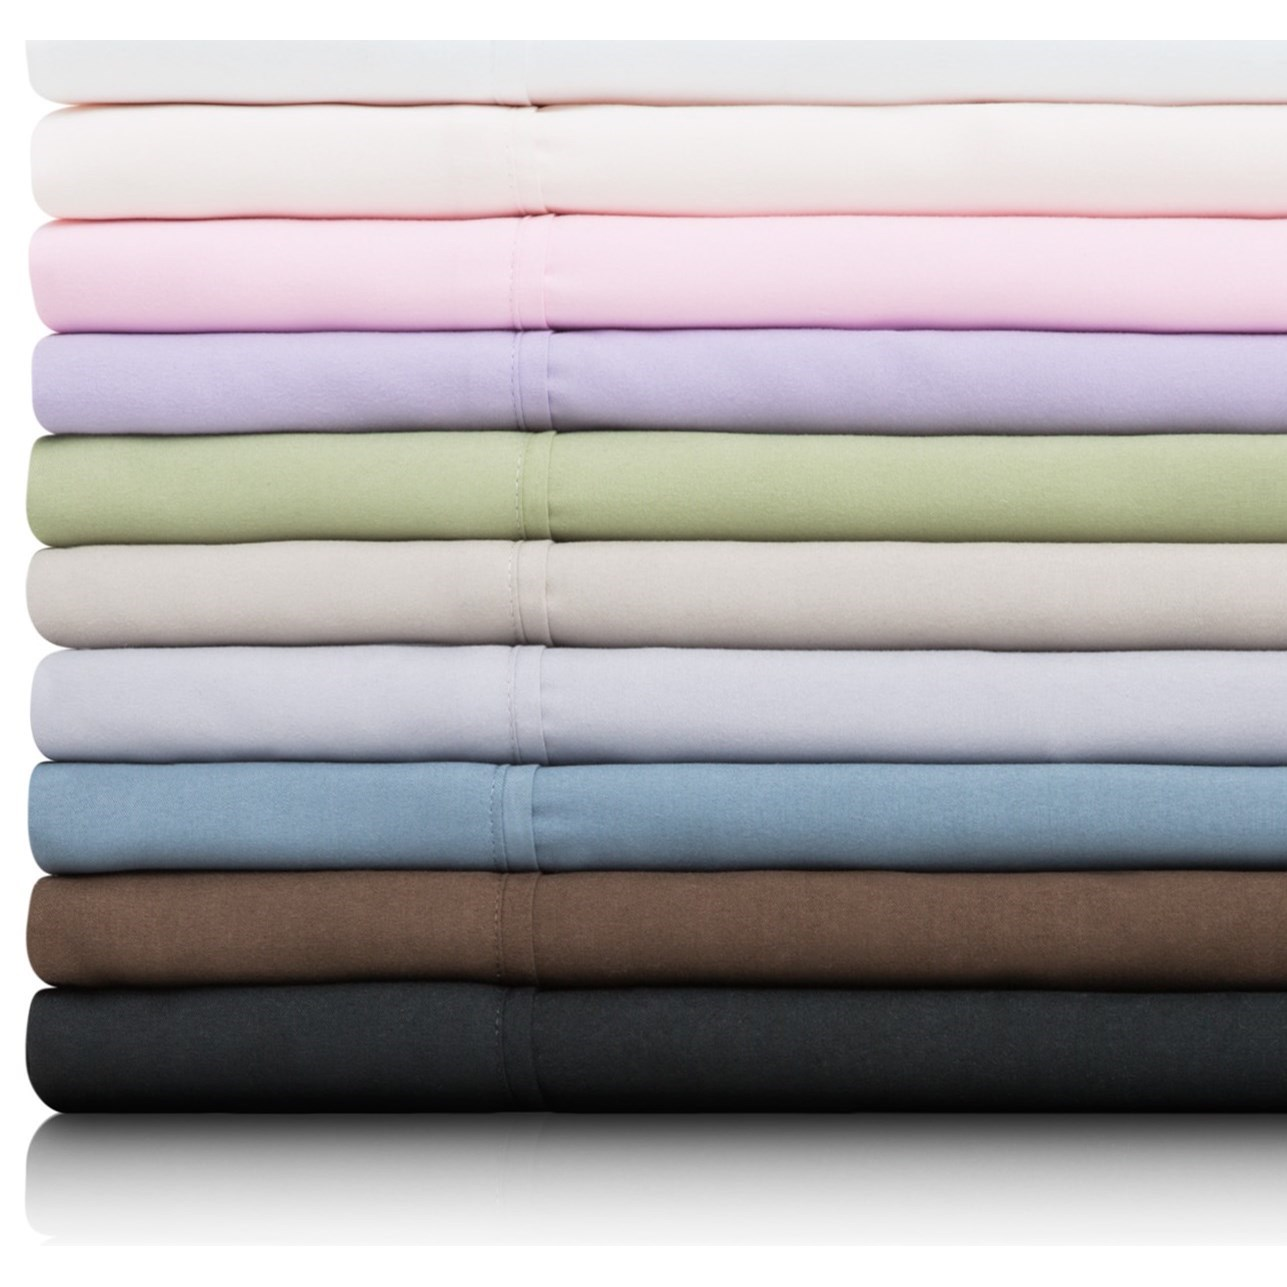 Malouf Brushed Microfiber Queen Woven™ Brushed Microfiber Sheet Set - Item Number: MA90QQFEMS